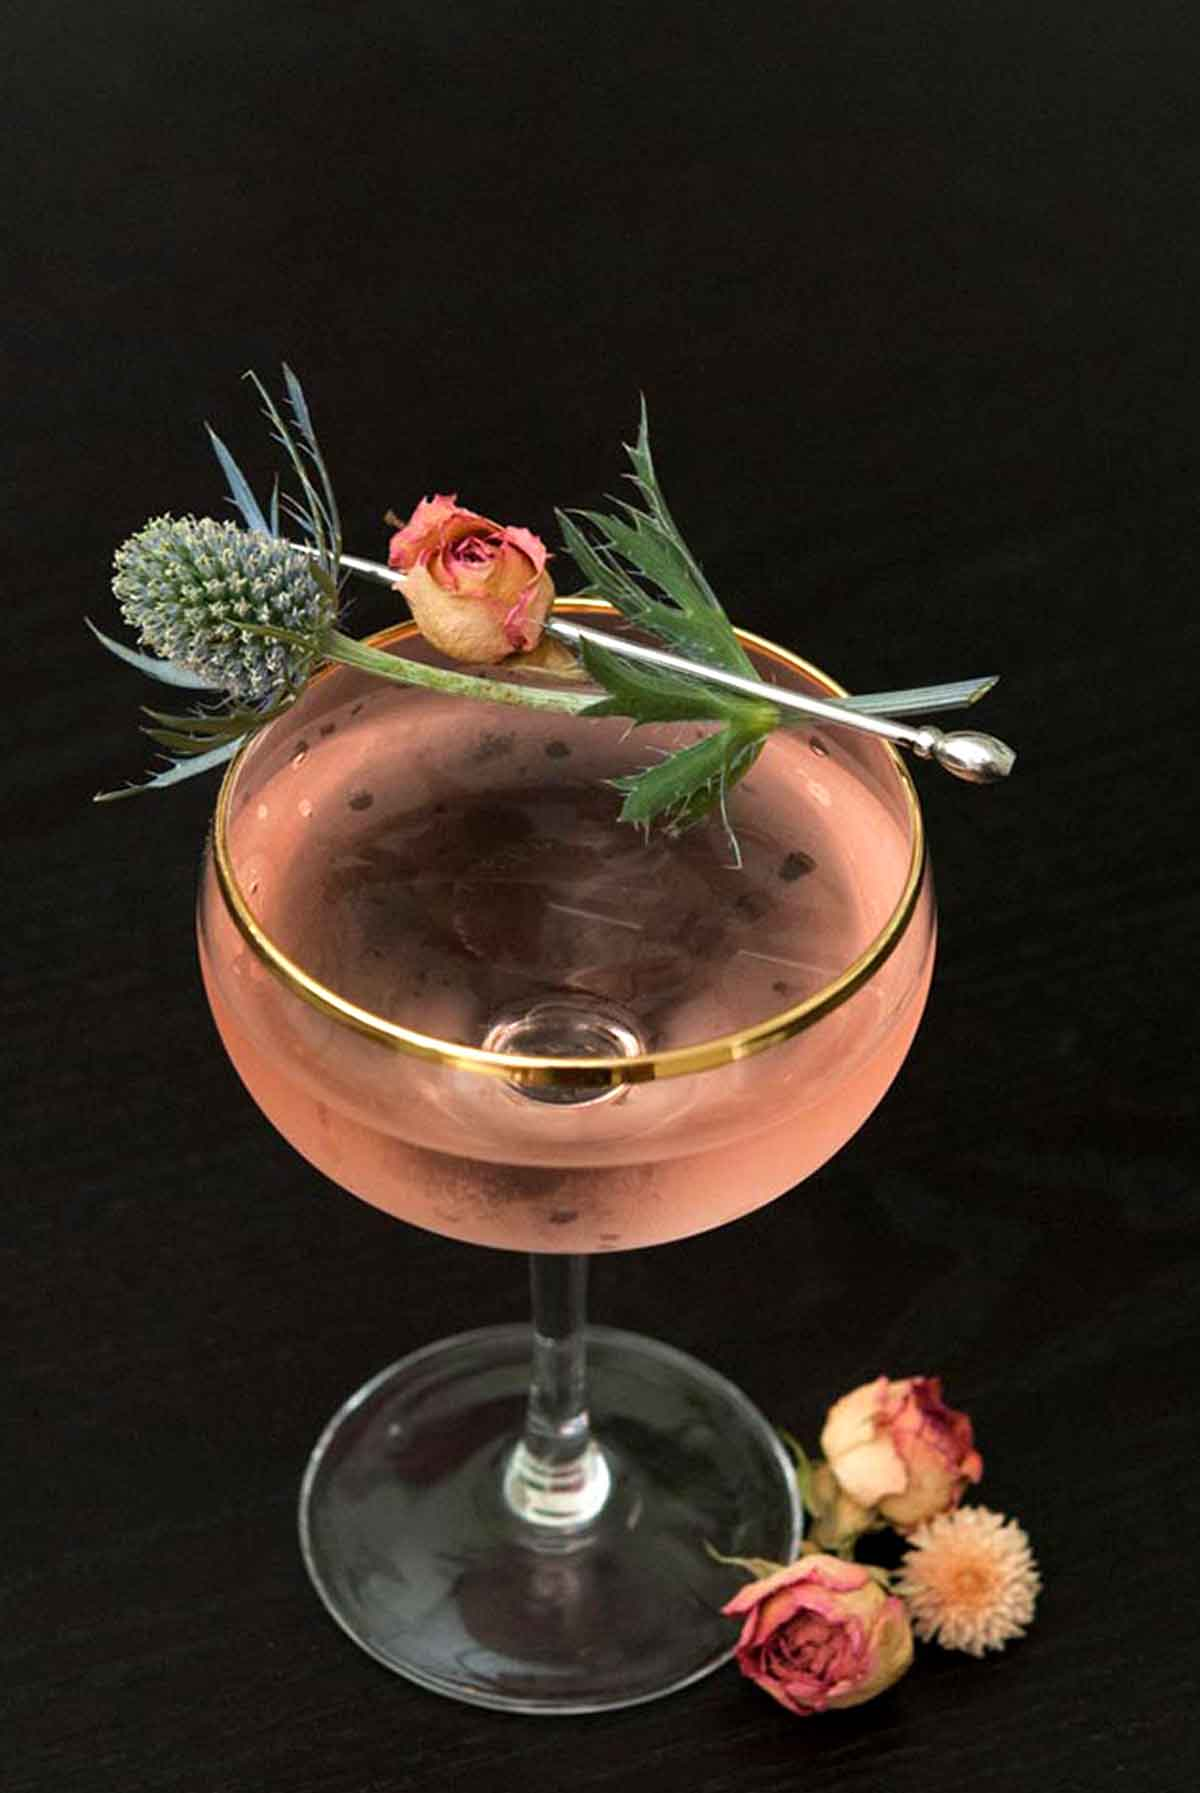 A pink martini, garnished with a pink spray rose and a sprig of thistle on a black table.